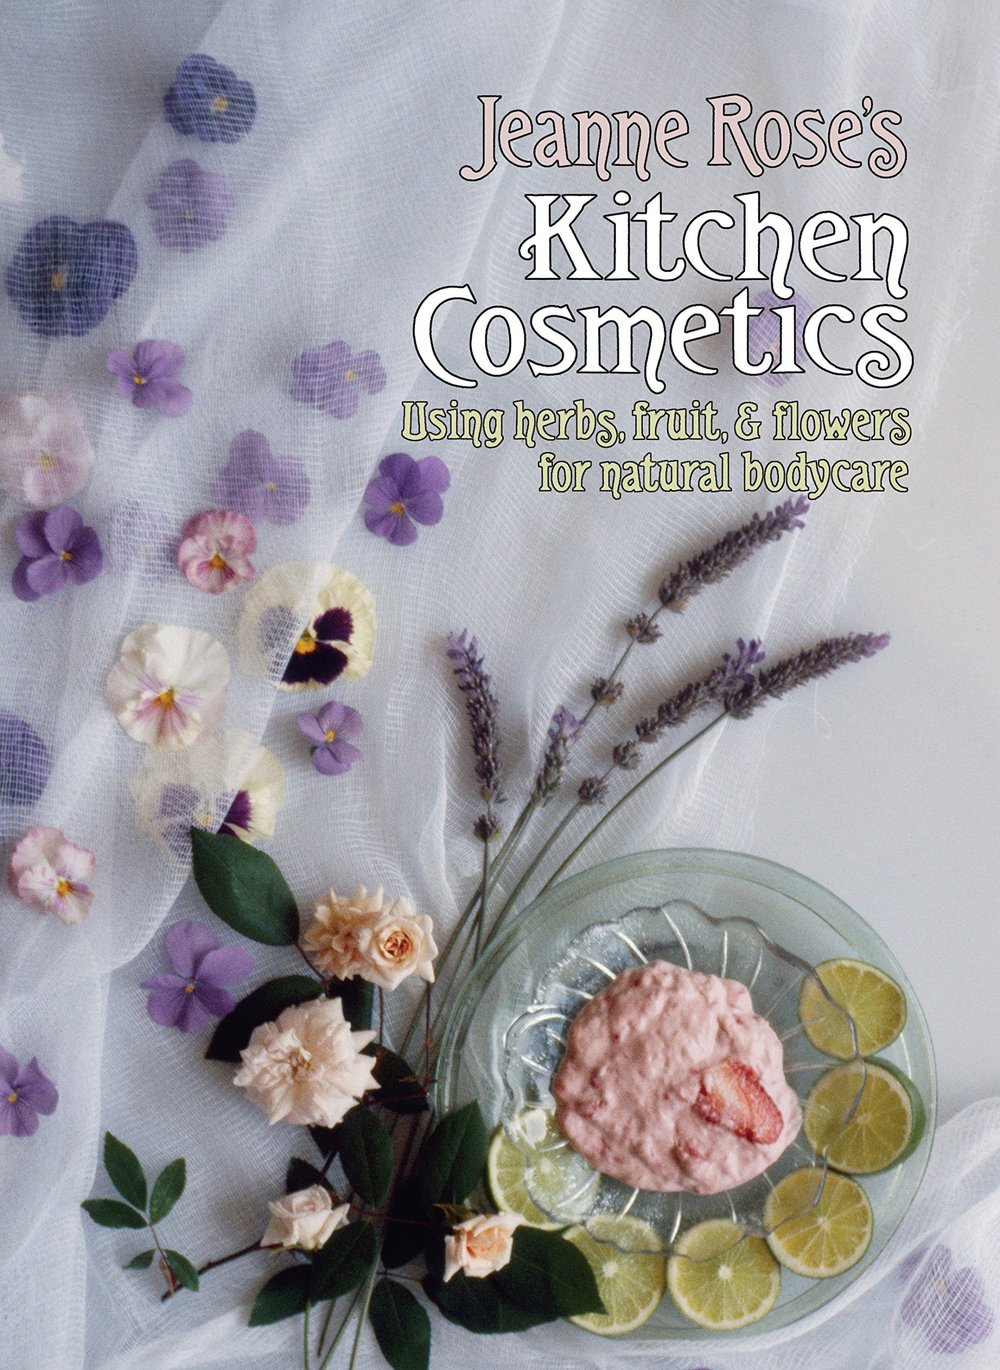 kitchen cosmetics jeanne rose.jpg